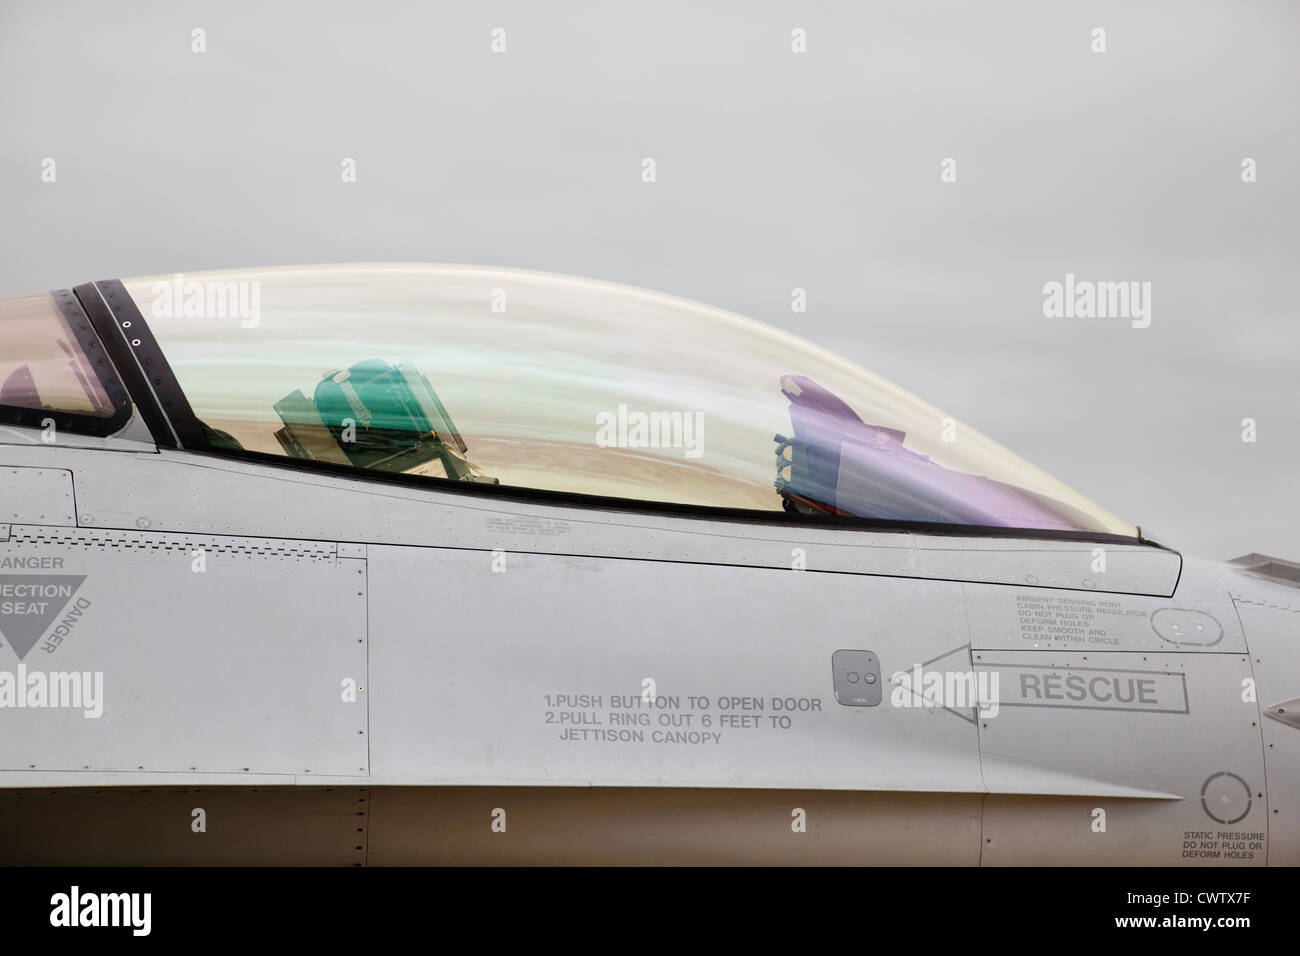 Detail view of General Dynamics F16 Fighting Falcon cockpit. - Stock Image